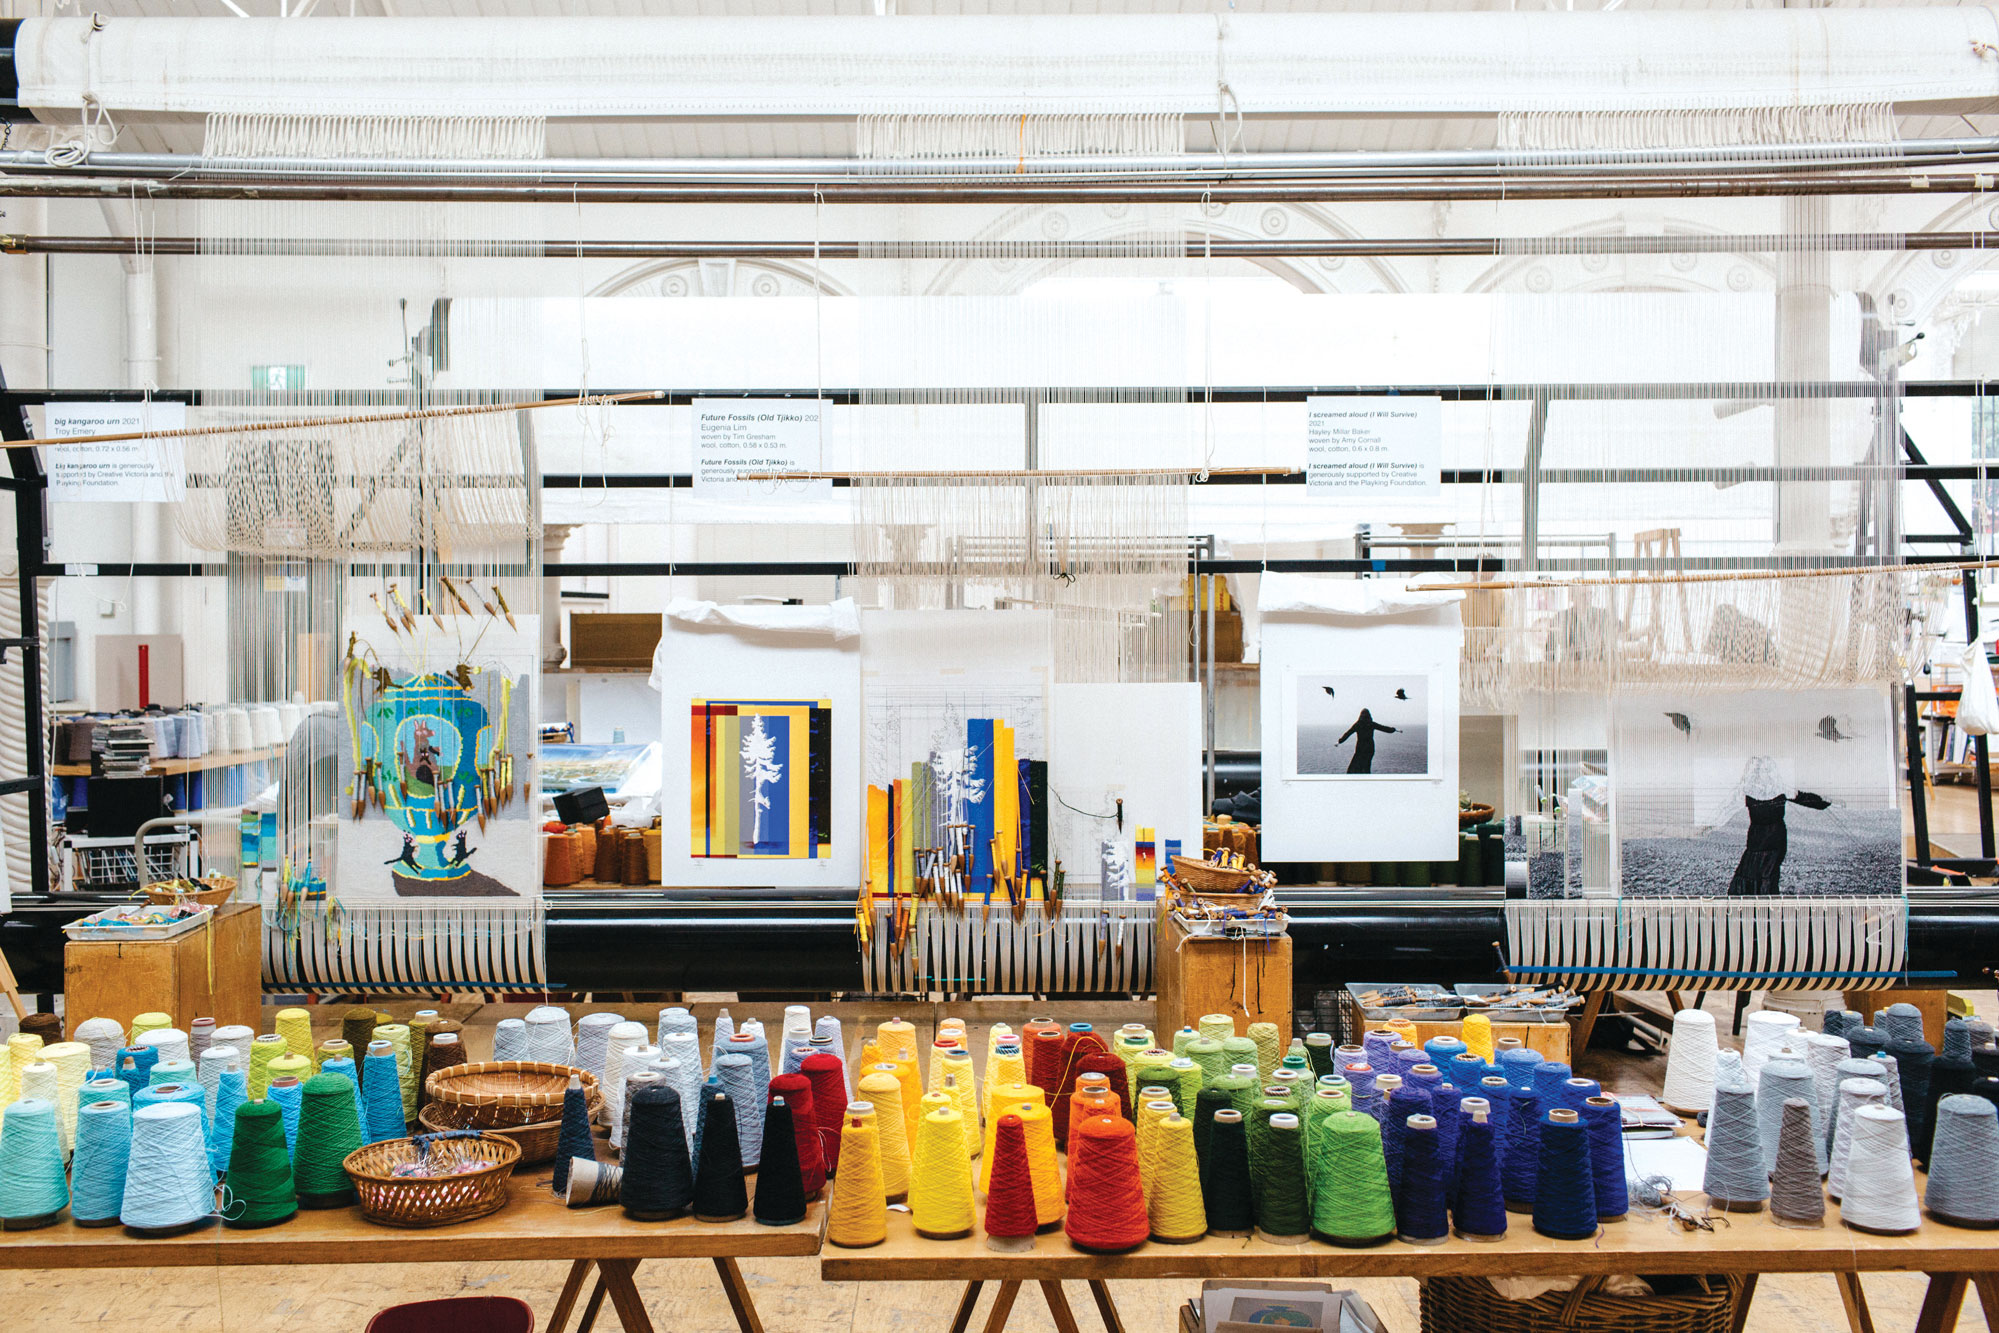 'Weaving Futures' tapestries designed by Troy Emery, Eugenia Lim and Hayley Millar Baker on the looms at ATW. Image: Marie-Luise Skibbe.